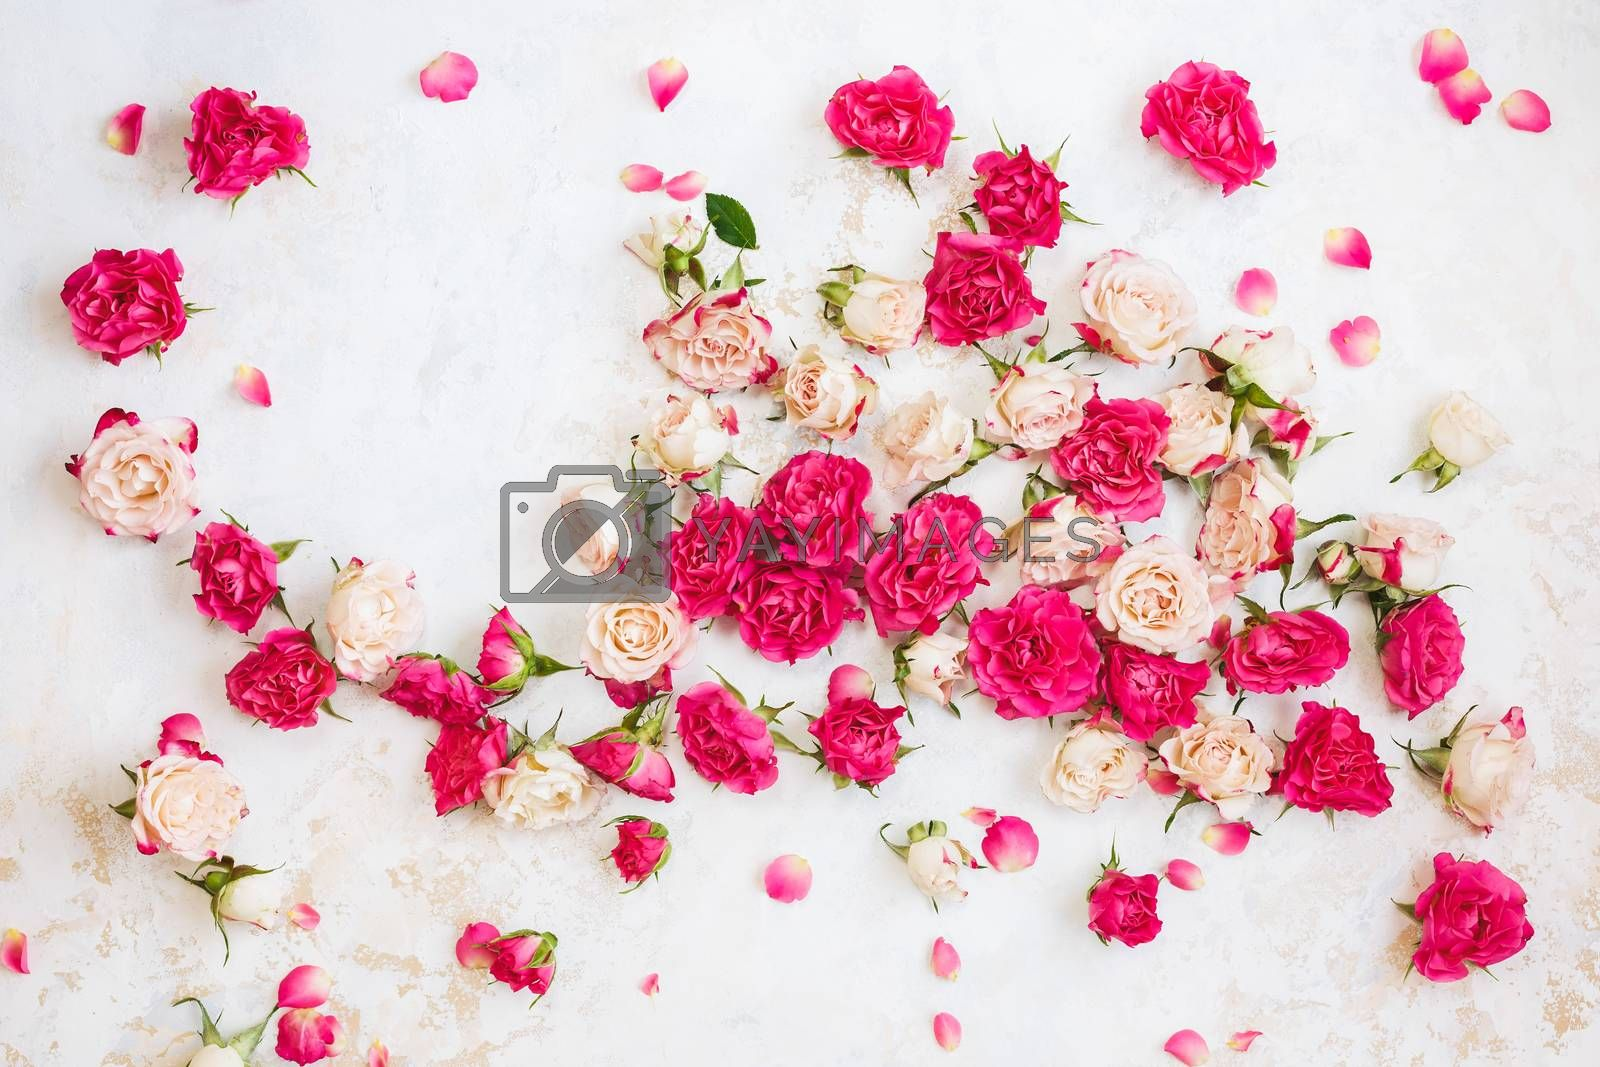 Red and pink roses background. Collection of  roses and petals arranged on white  and gold textured background. Top view, blank space